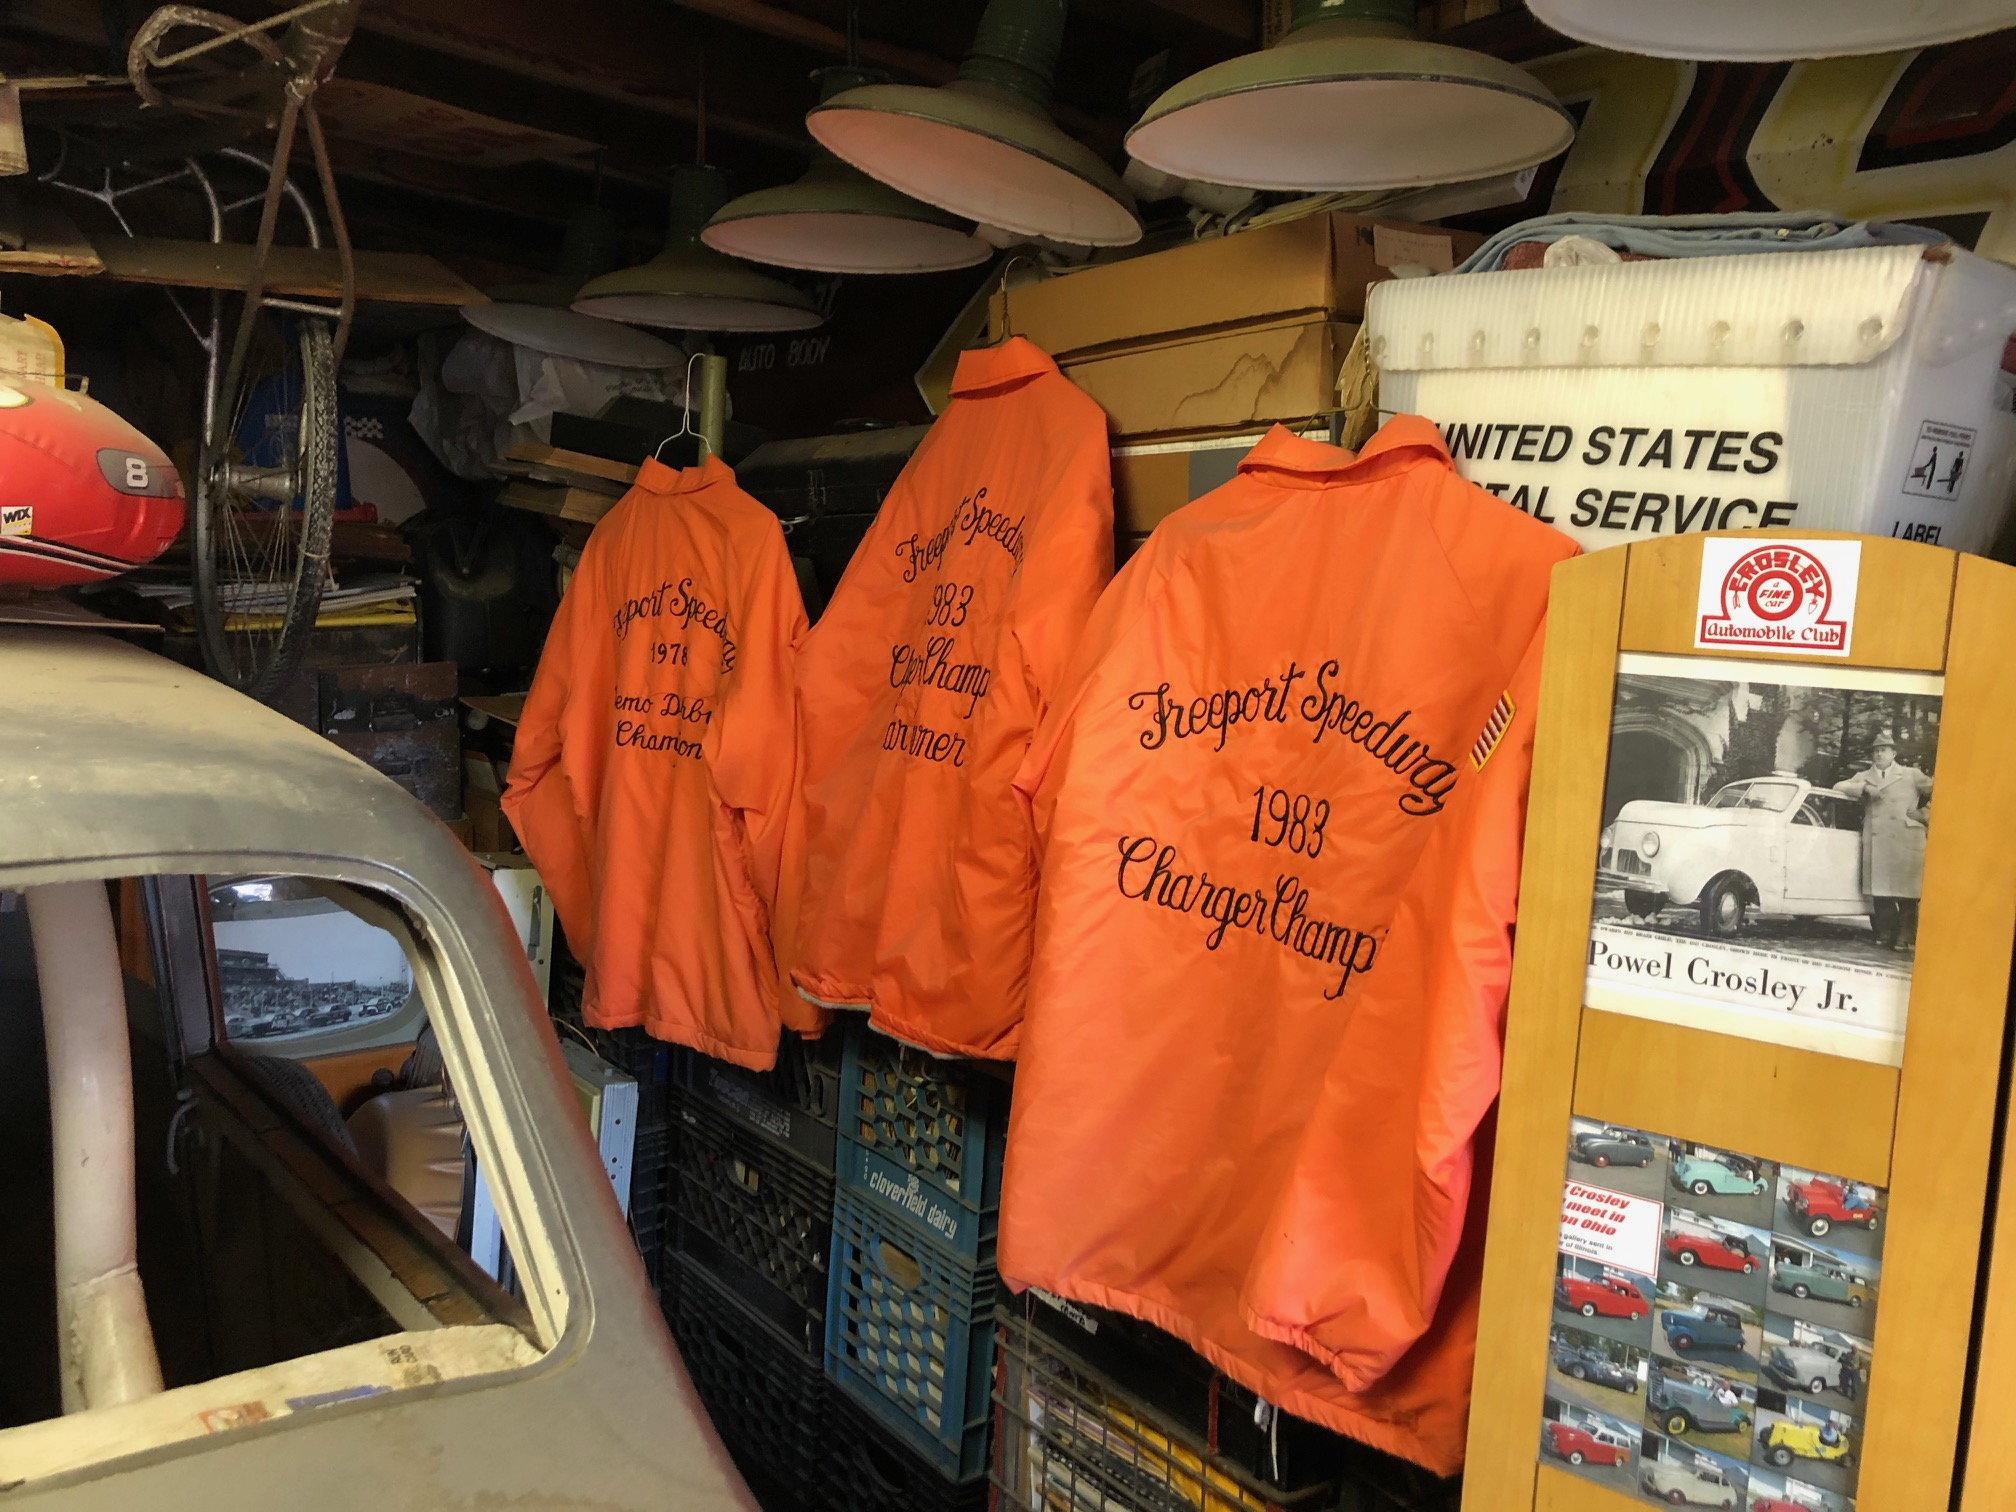 Himes Museum racing team jackets